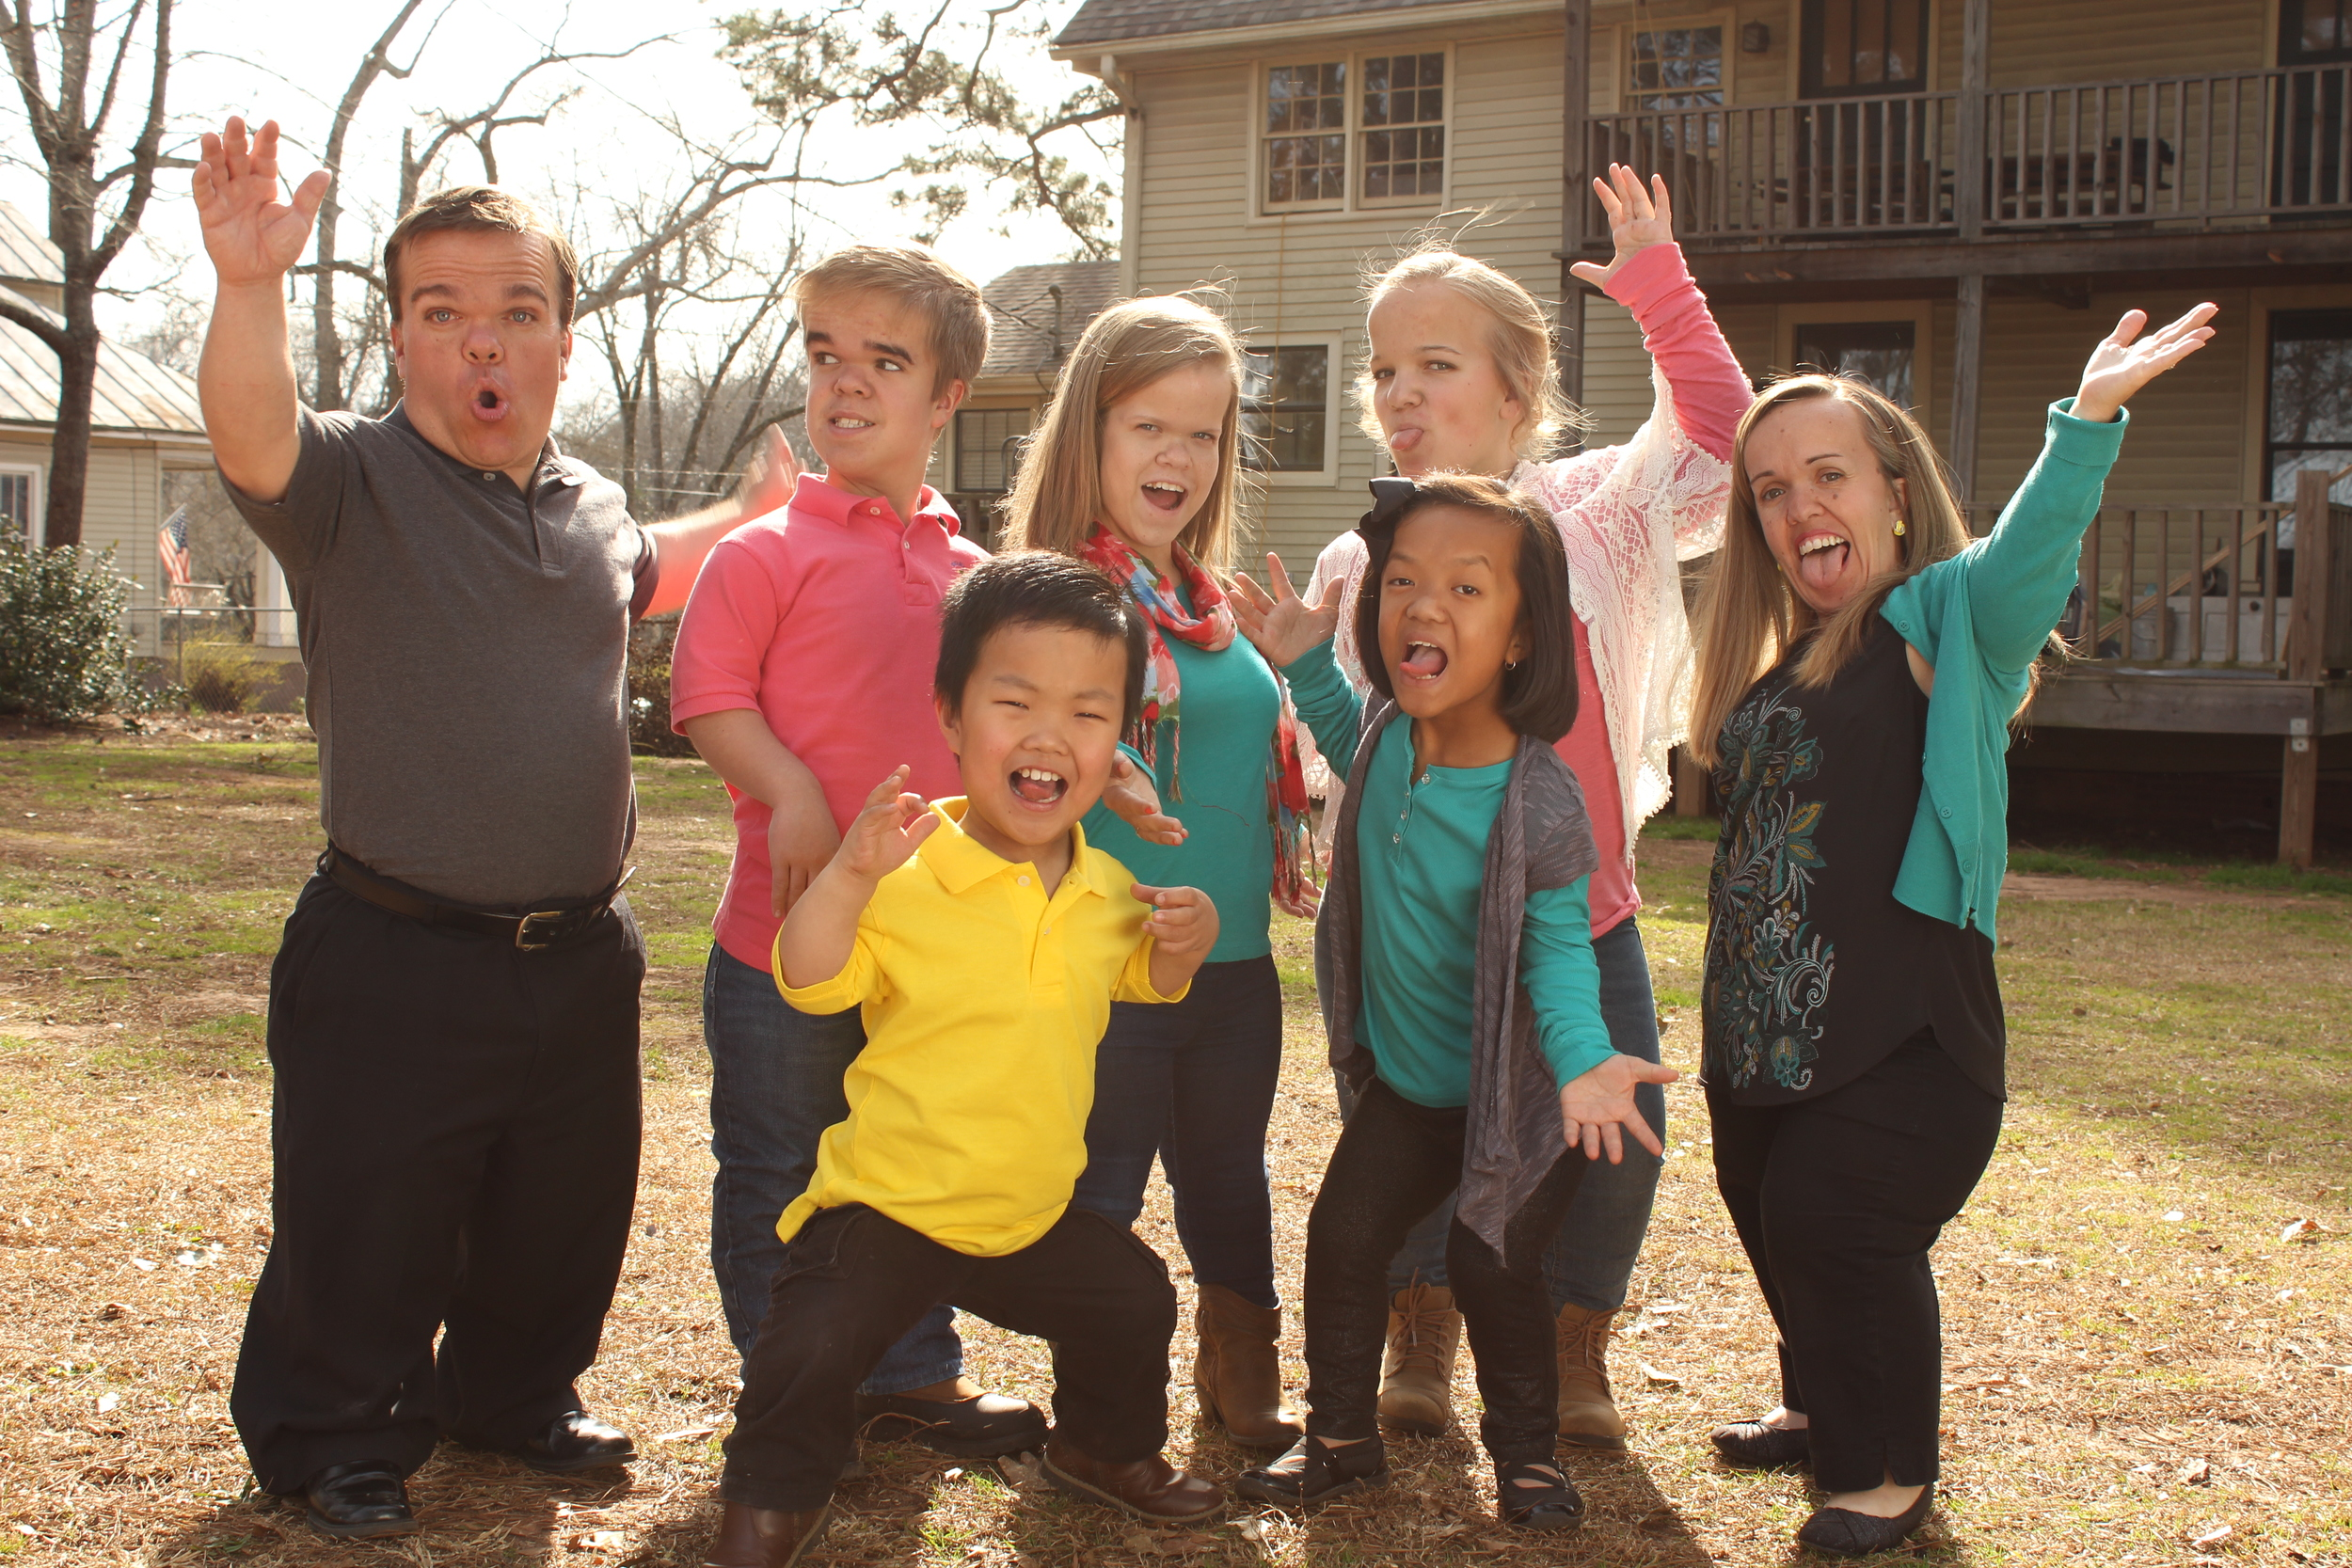 7 Little Johnstons take a silly family photo